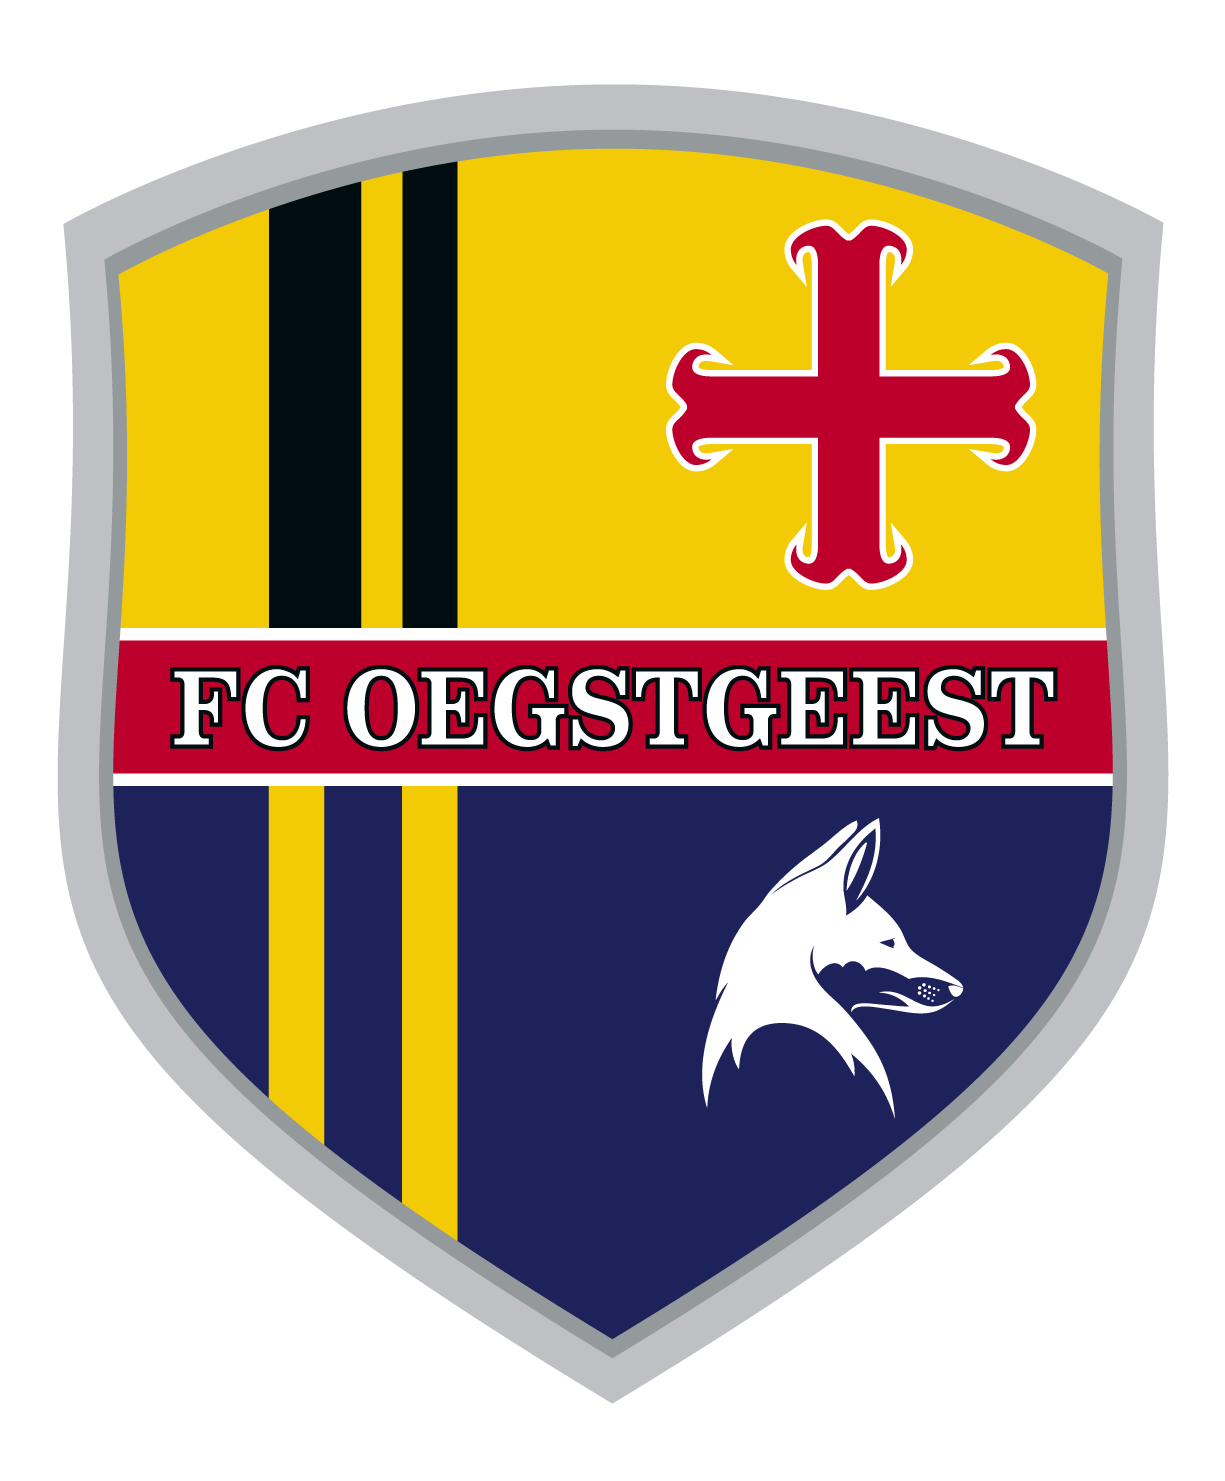 FC Oegstgeest puzzelrit/rally: mail naar mailto:comcie@fcoegstgeest.nl